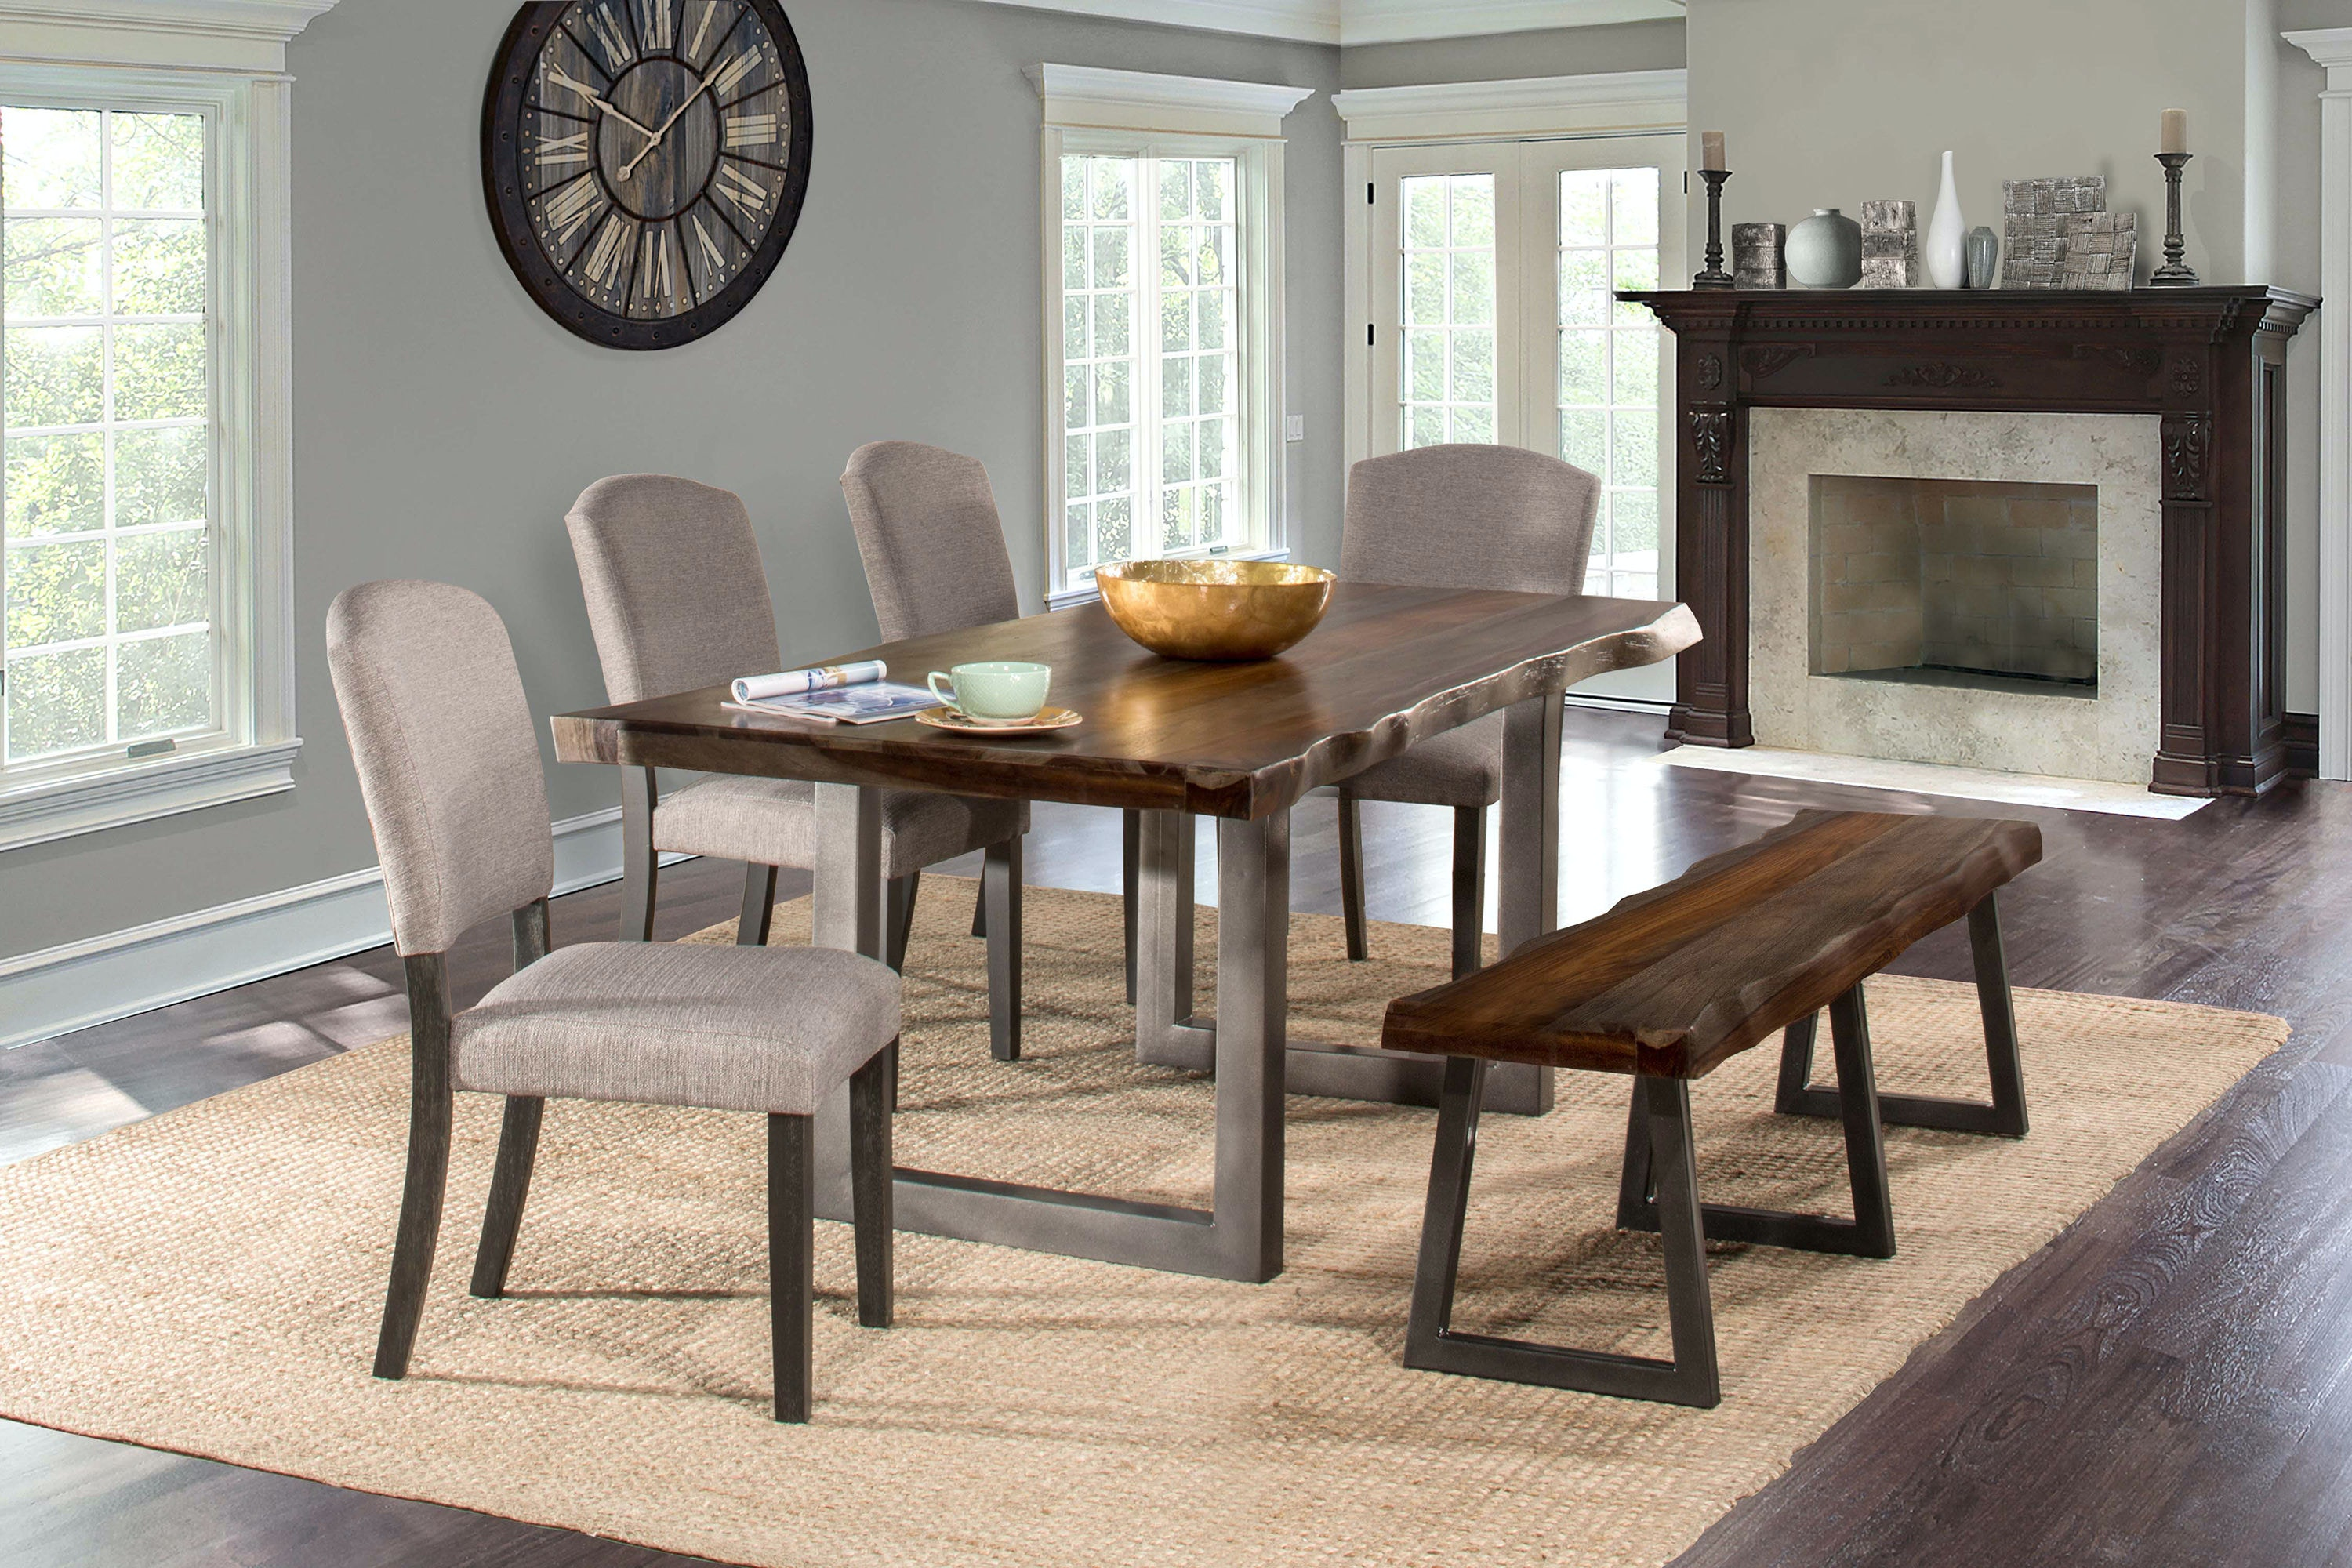 5925DTBHC. Emerson 6 Piece Rectangle Dining Set